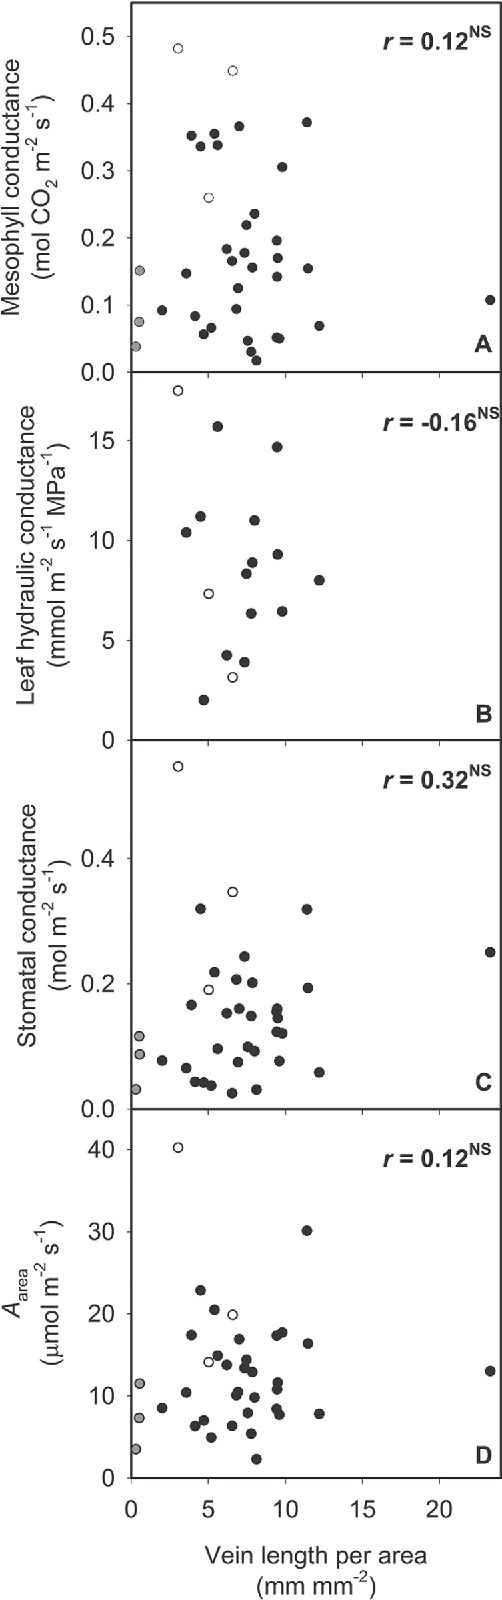 Fig. 3. Independence of (A) mesophyll conductance, (B) leaf hydraulic conductance, (C) stomatal conductance, and